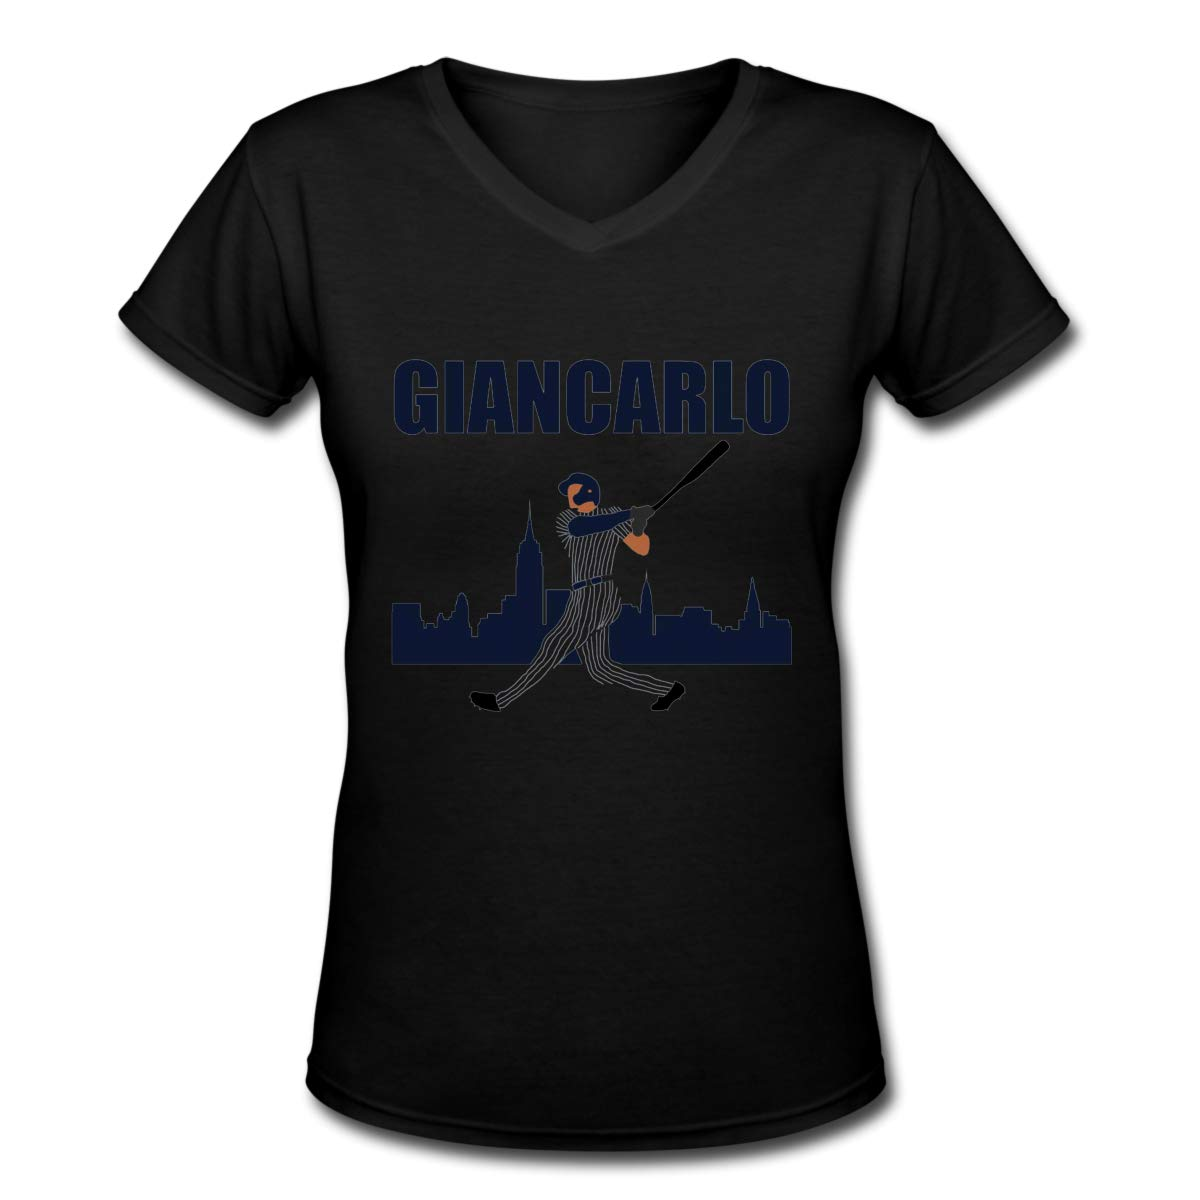 Giancarlo New York Womens T Shirt Casual Cotton Short Sleeve V-Neck Graphic T-Shirt Tops Tees